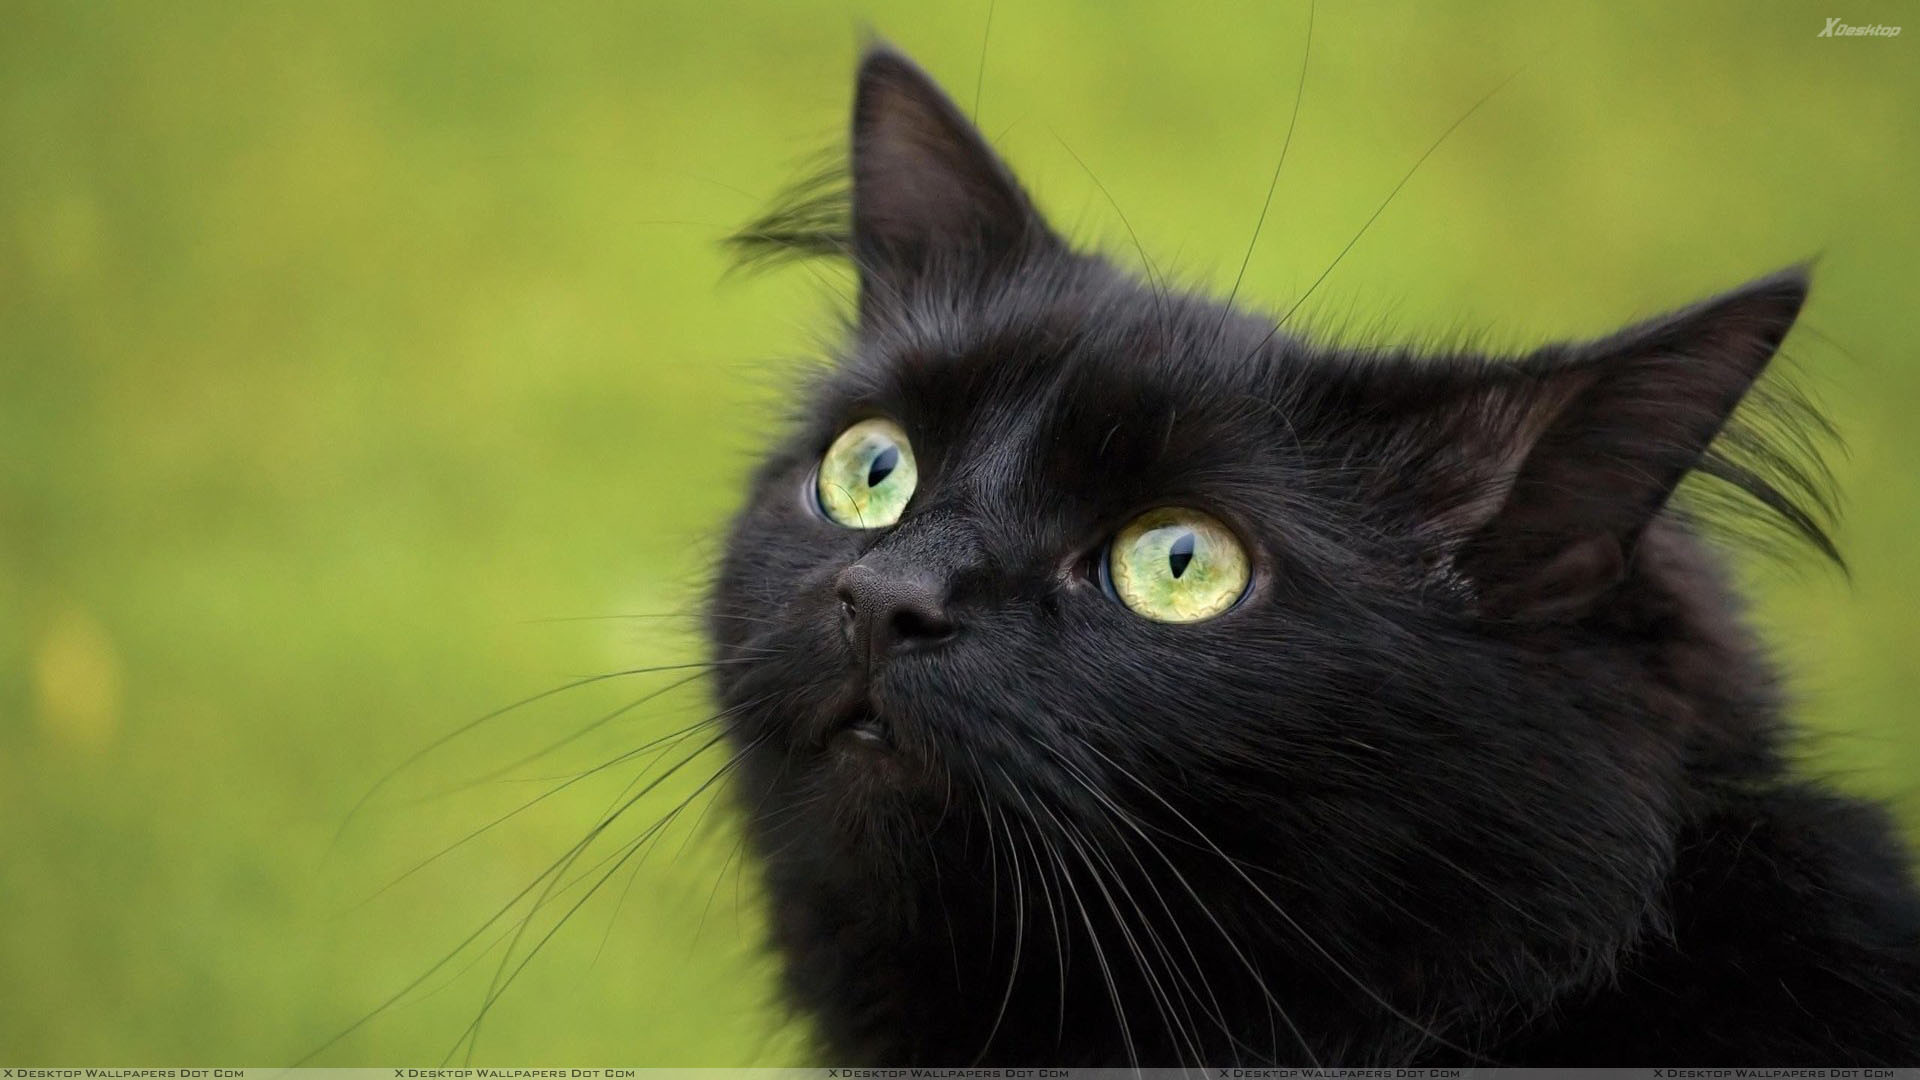 Black Cat In Green Eyes And Green Background Wallpaper 1920x1080